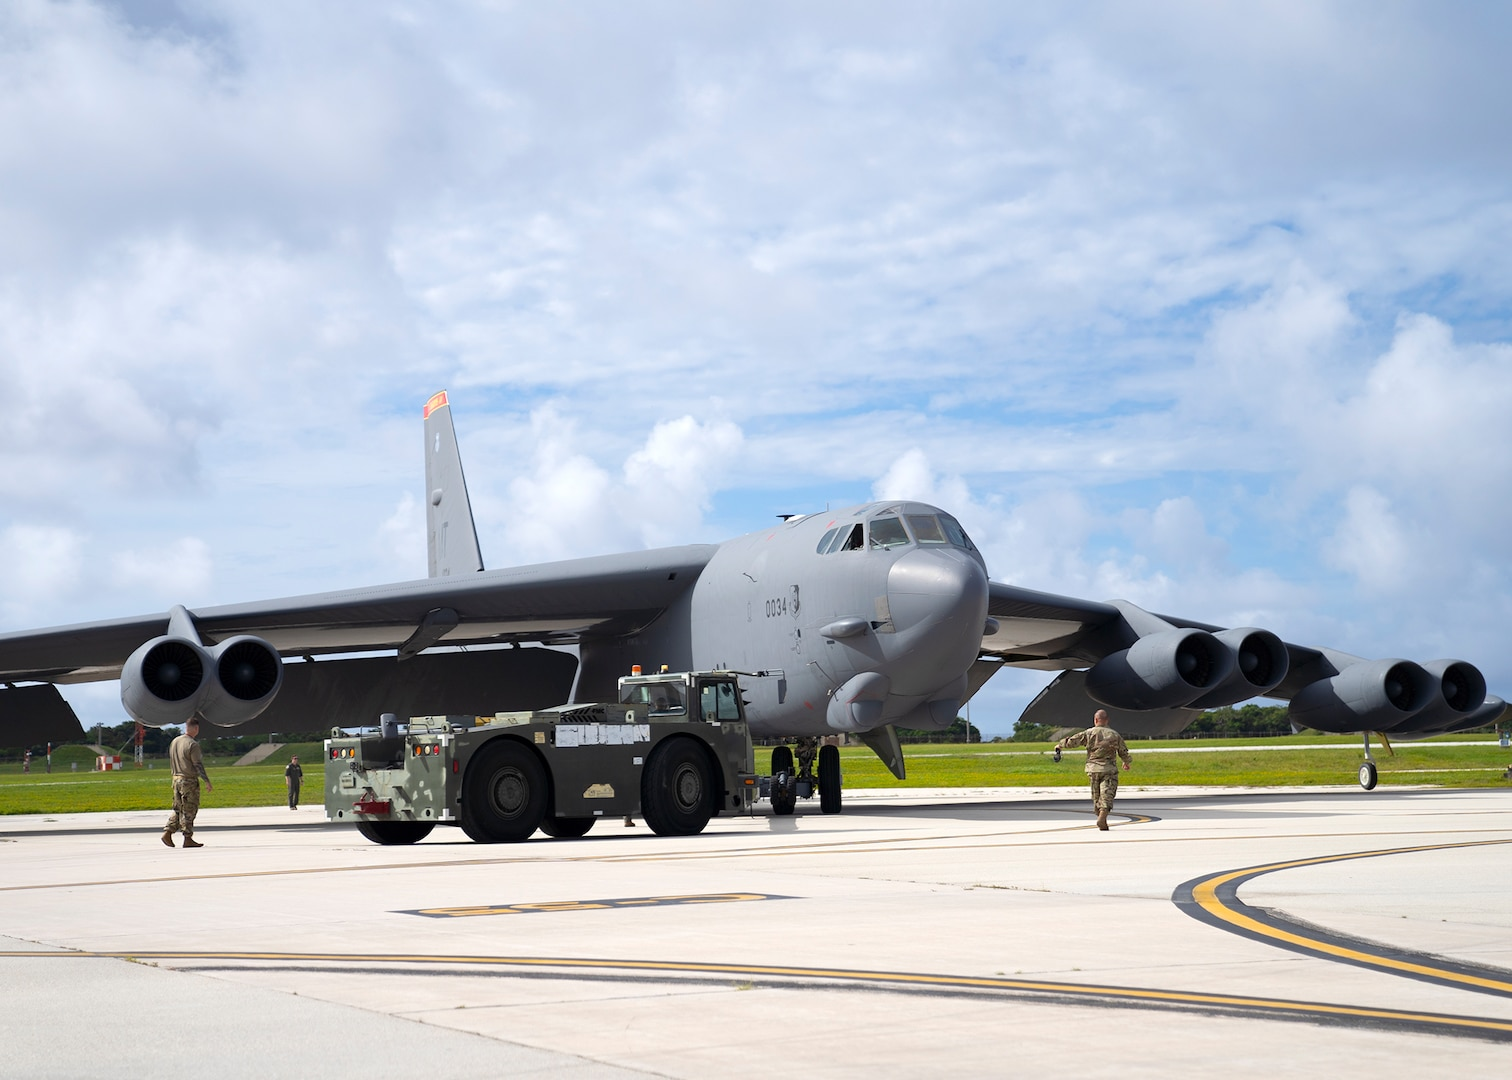 U.S. Air Force B-52H Stratofortress from the 5th Bomb Wing, Minot Air Force Base North Dakota, parks at Andersen Air Force Base, Guam, for a Bomber Task Force deployment, July 15, 2021. Bomber Task Force missions demonstrate the strategic credibility and tactical flexibility of U.S. forces in today's security environment across the globe. (U.S. Air Force photo by Staff Sgt. Kevin Iinuma)